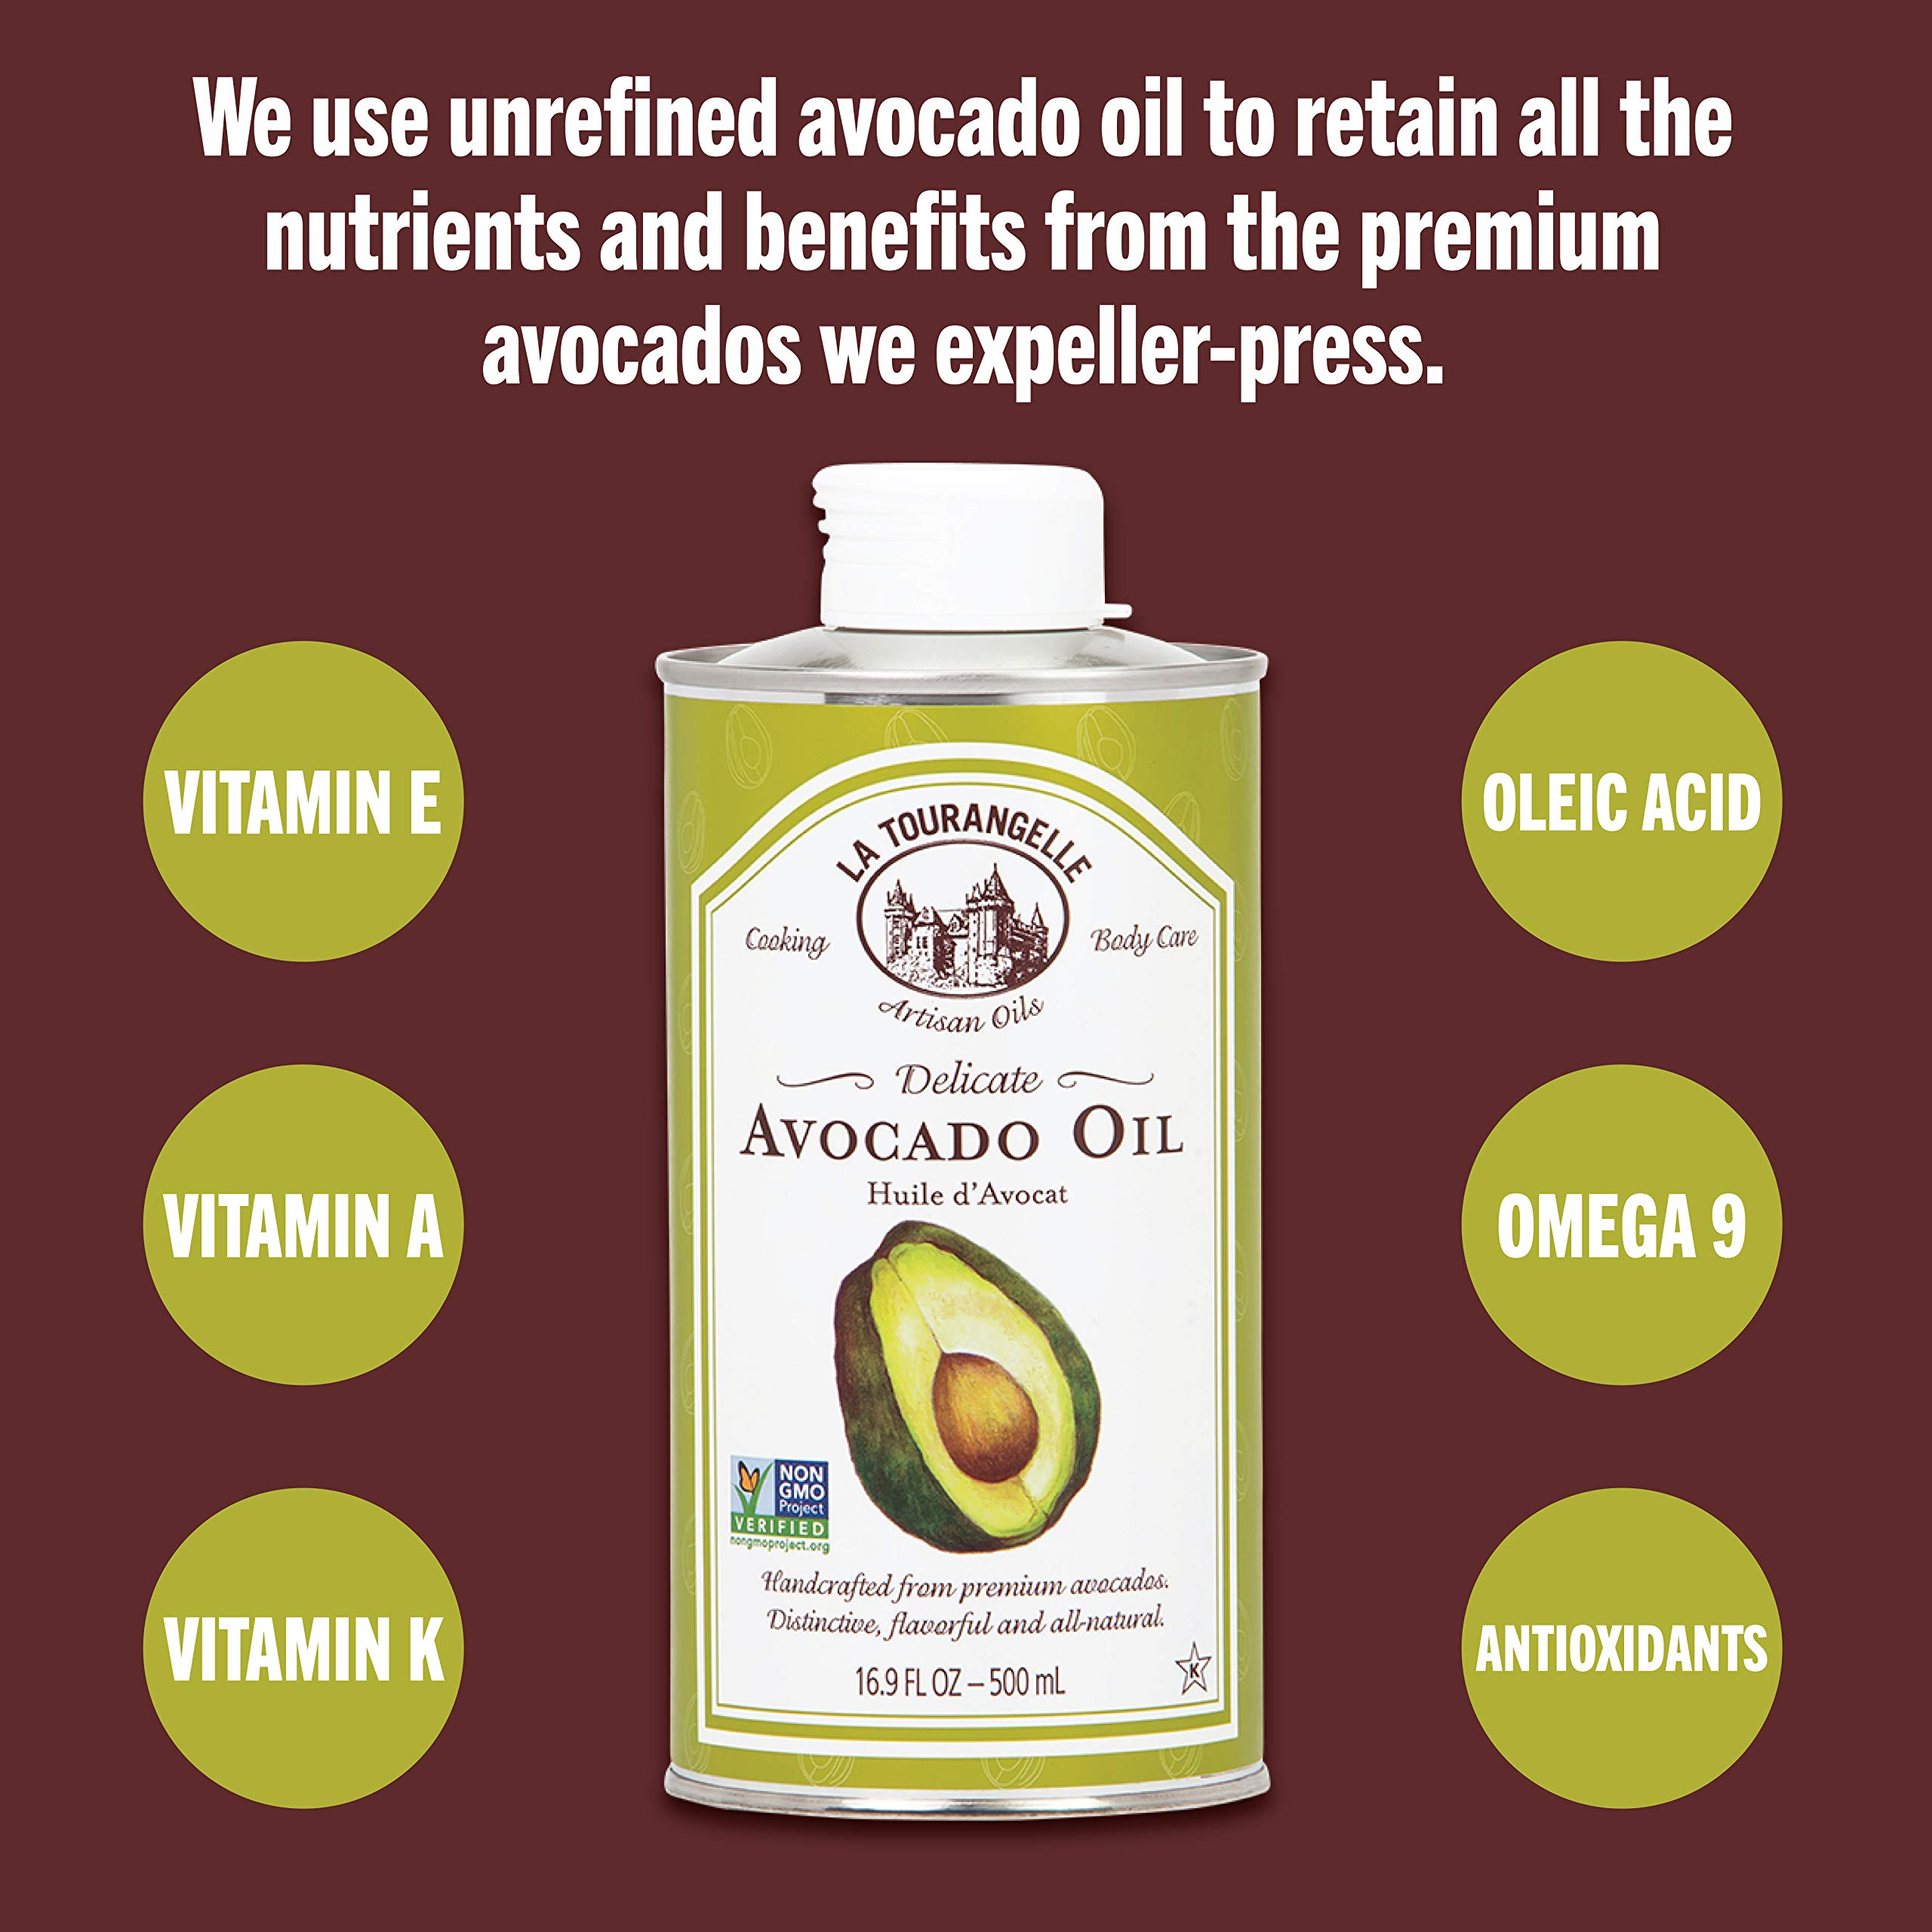 La Tourangelle Avocado Oil 25.4 Fl. Oz., All-Natural, Artisanal, Great for Salads, Fruit, Fish or Vegetables, Great Buttery Flavor by La Tourangelle (Image #6)